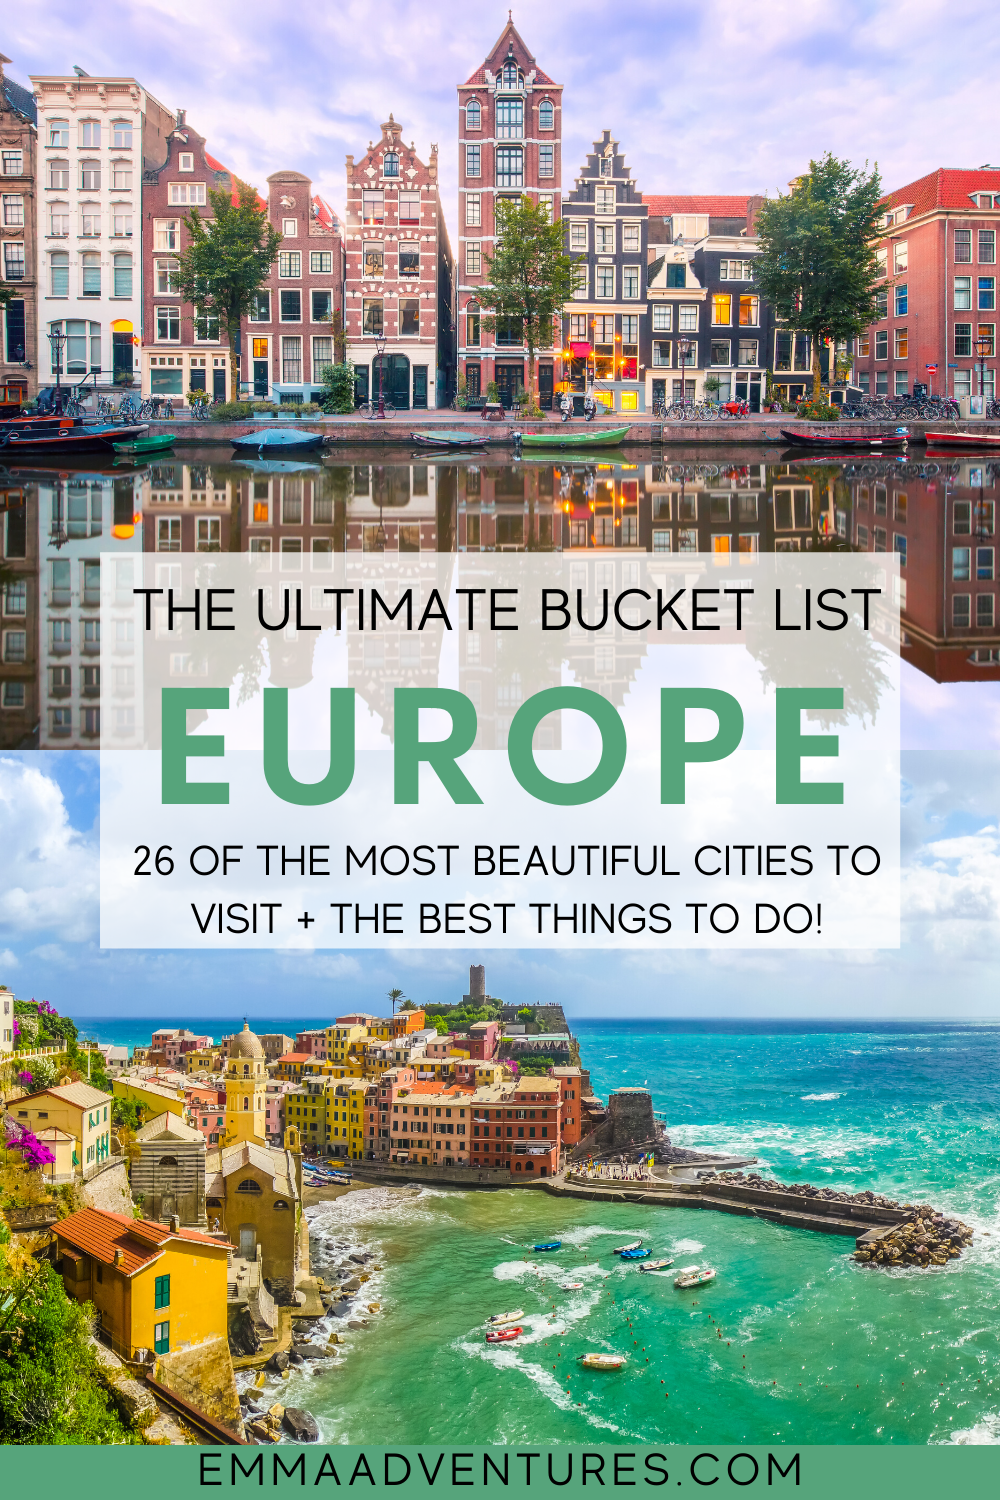 The most epic Europe travel bucket list! All of the best things to do and places to visit in Europe, with 26+ of the best cities to see in Europe! The ultimate Europe travel guide. Read it now! #europe #europebucketlist #europetravel